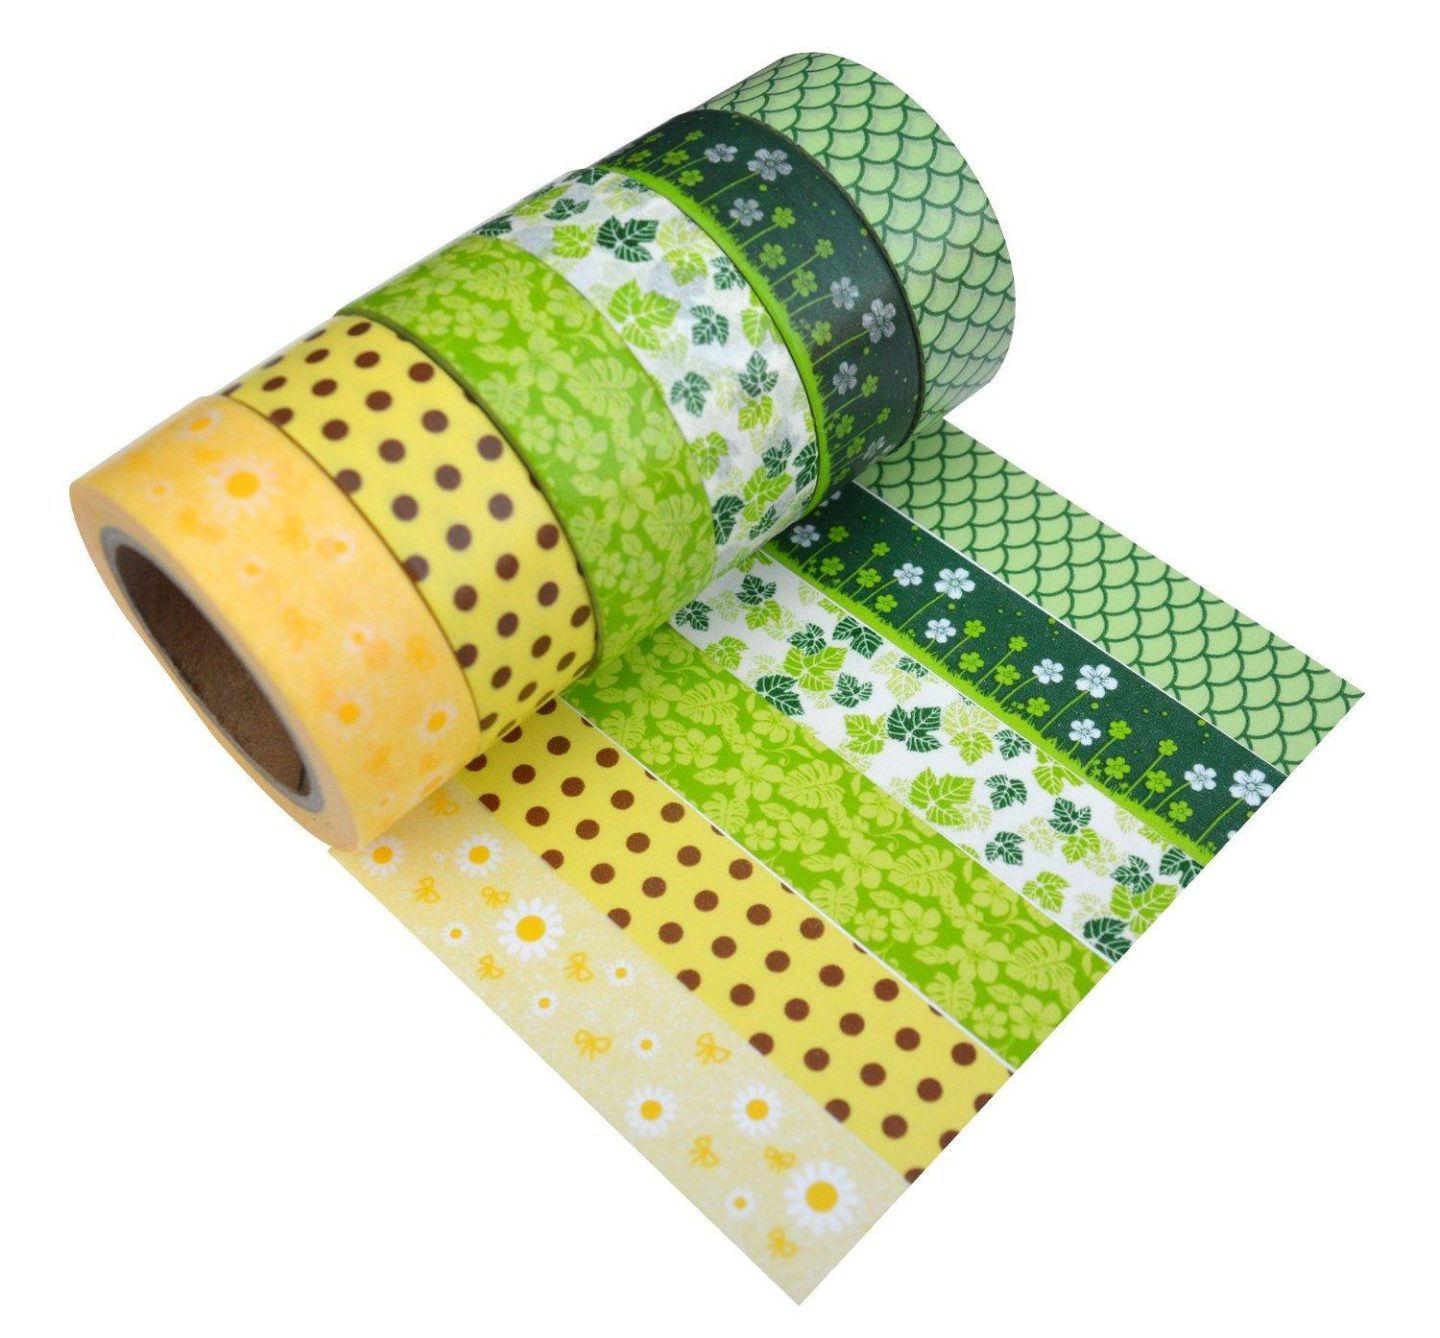 Washi Tape Set of 12 Rolls - Tiny Floret 6 Washi Rolls